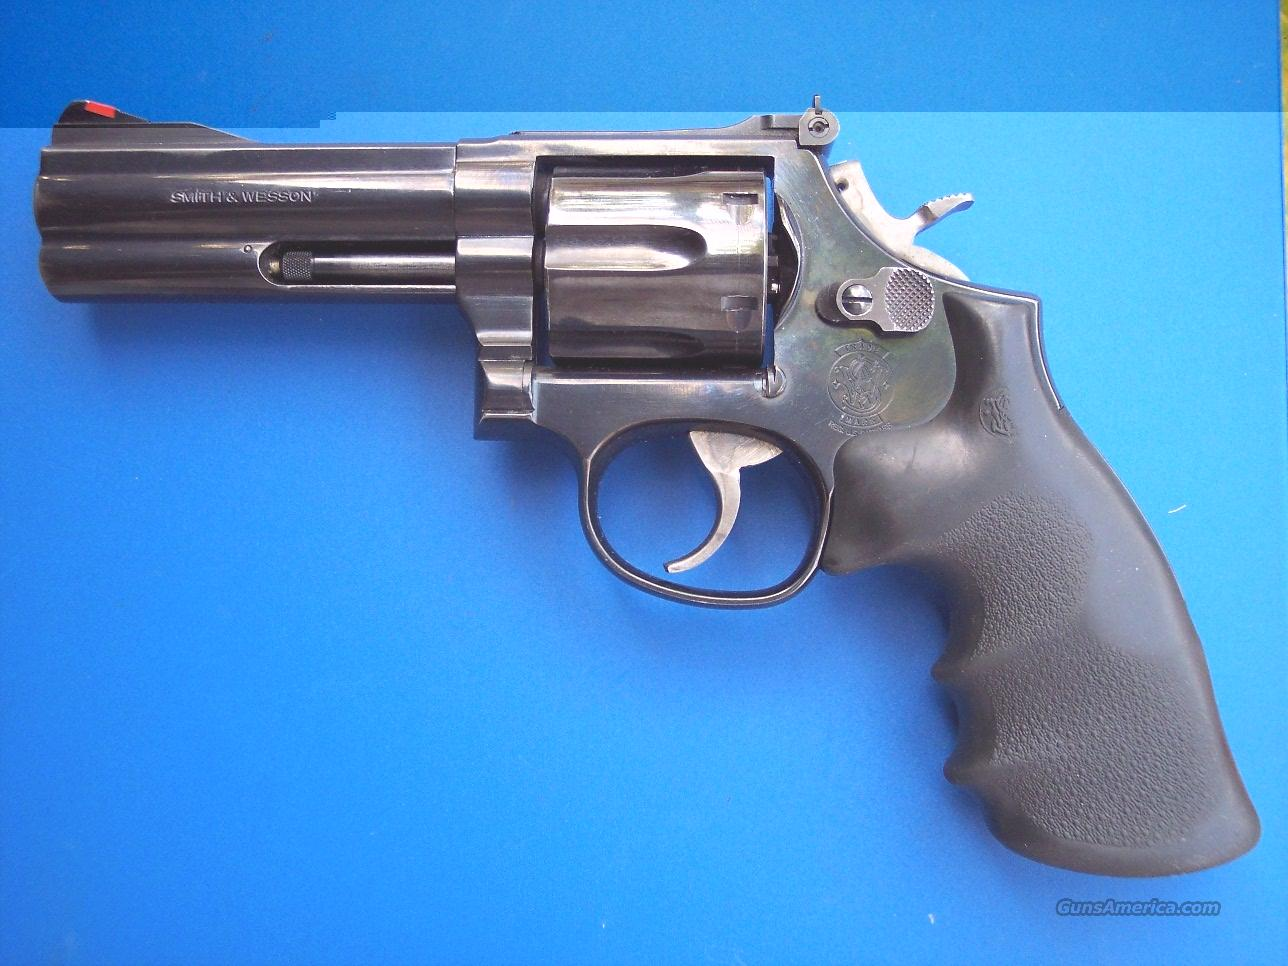 "Smith & Wesson 586-4 .357 mag 4""  Guns > Pistols > Smith & Wesson Revolvers > Full Frame Revolver"